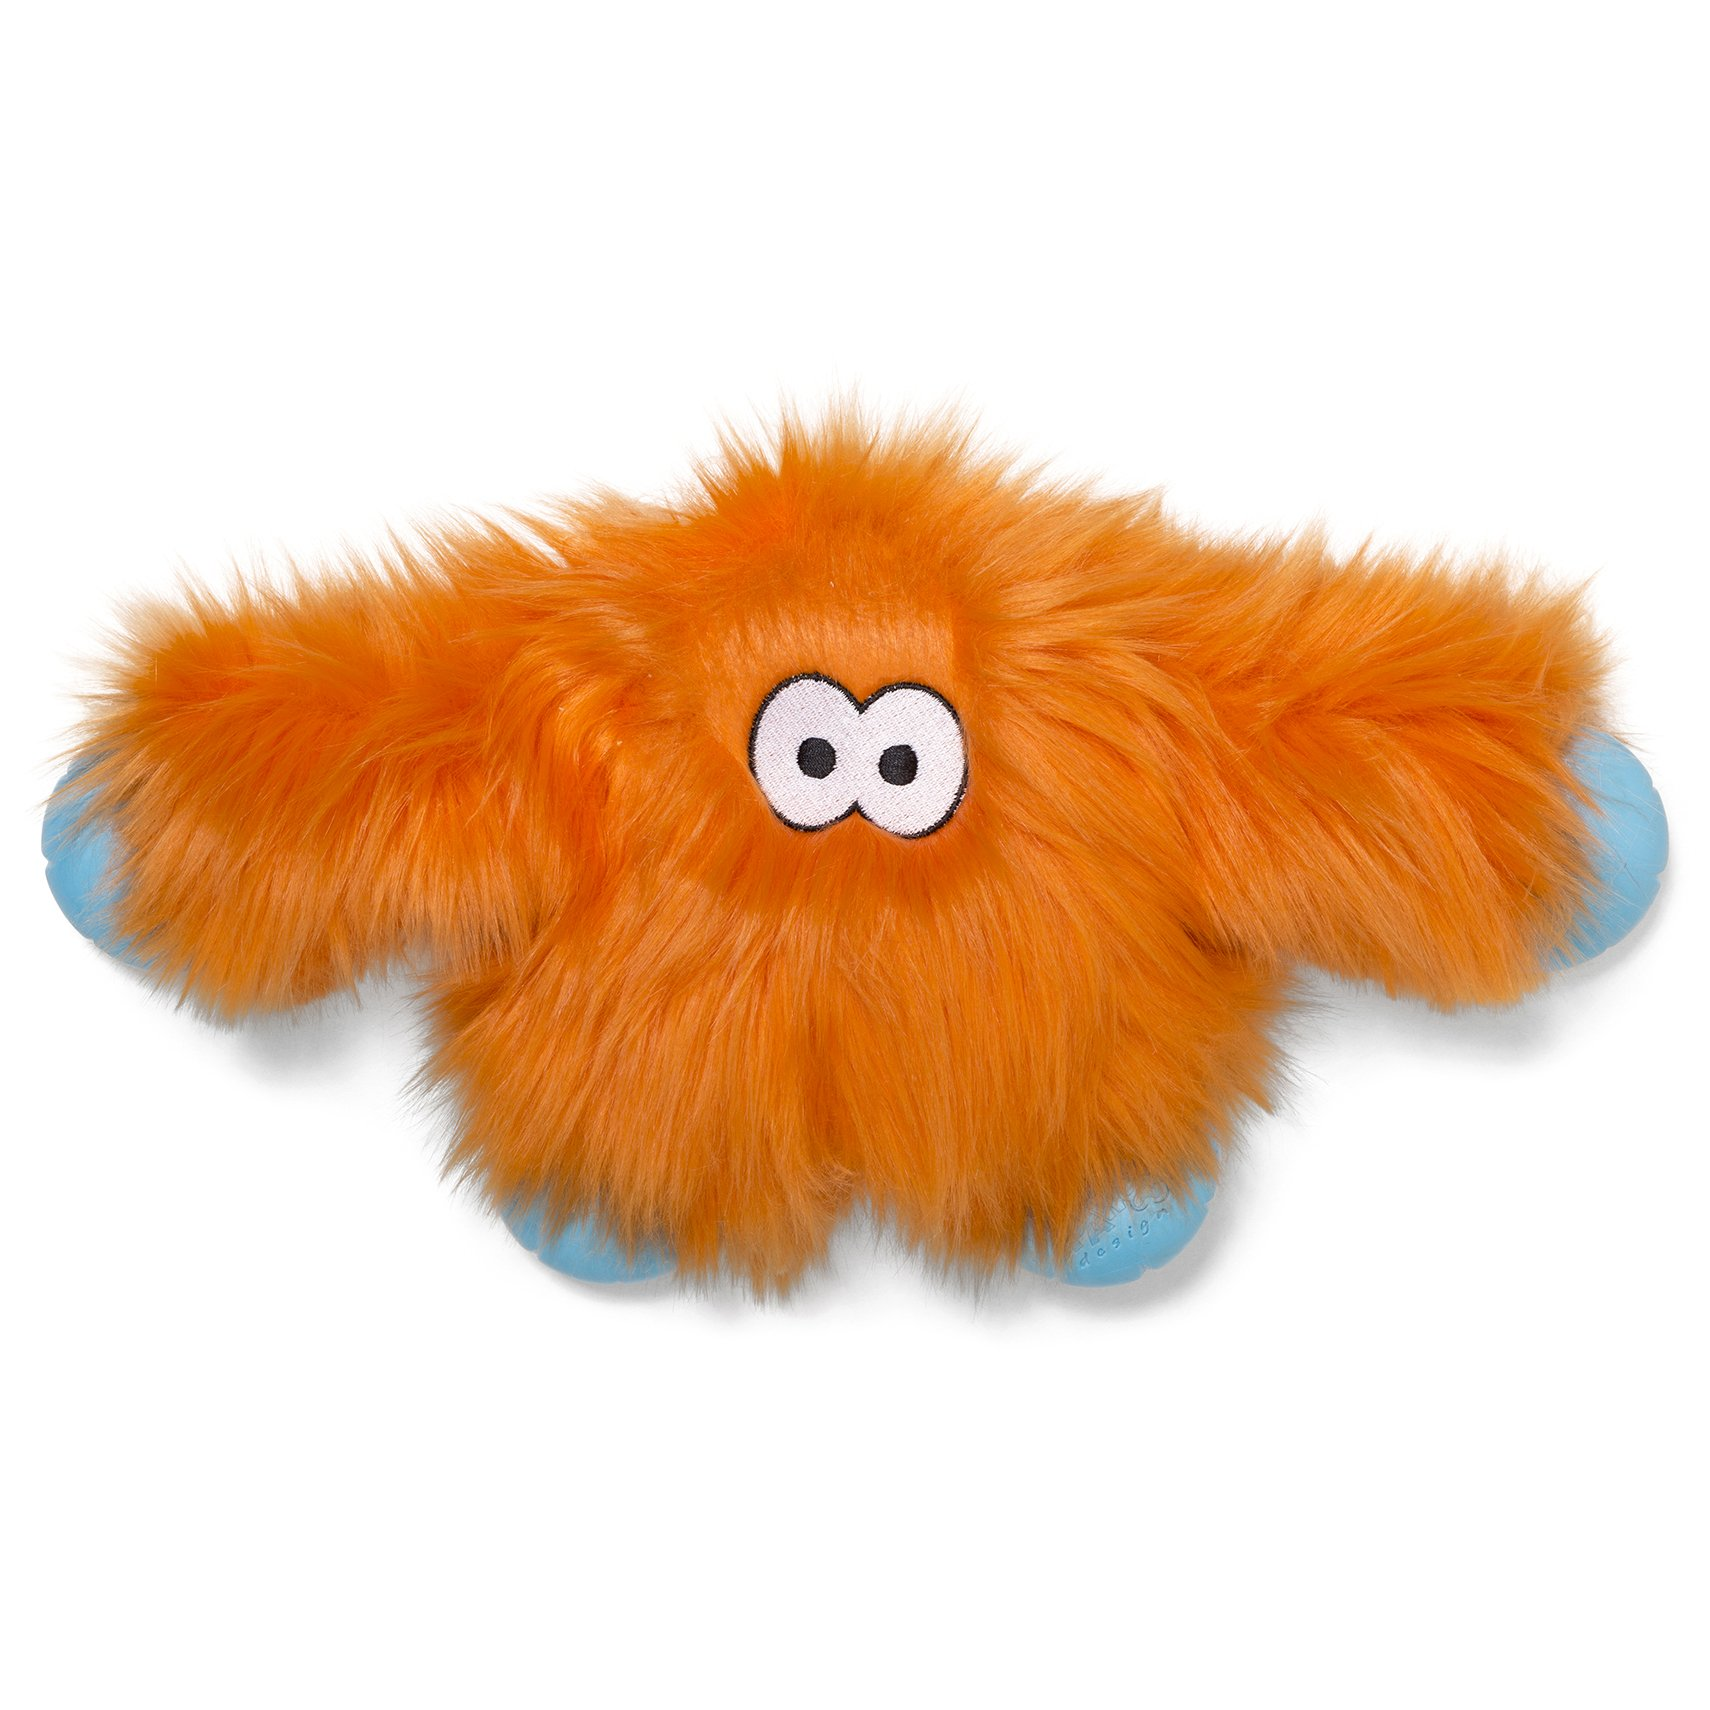 West Paw Rowdies with HardyTex and Zogoflex, Durable Plush Dog Toy for Medium to Large Dogs, Jefferson, Orange Fur by West Paw Design